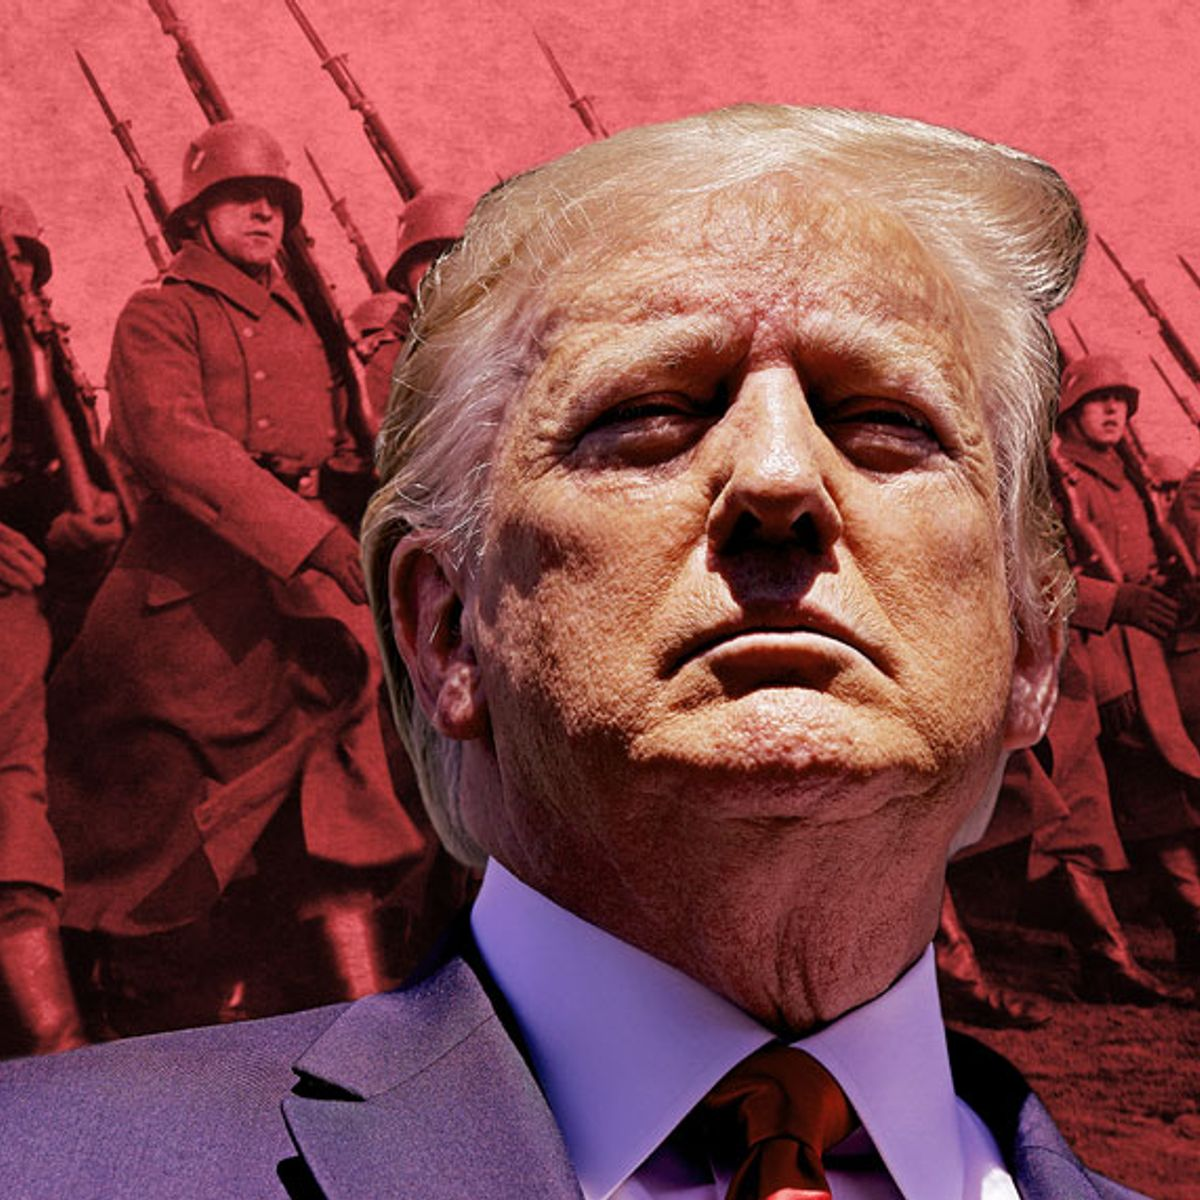 In extreme crises, conservatism can turn to fascism. Here's how that might play out